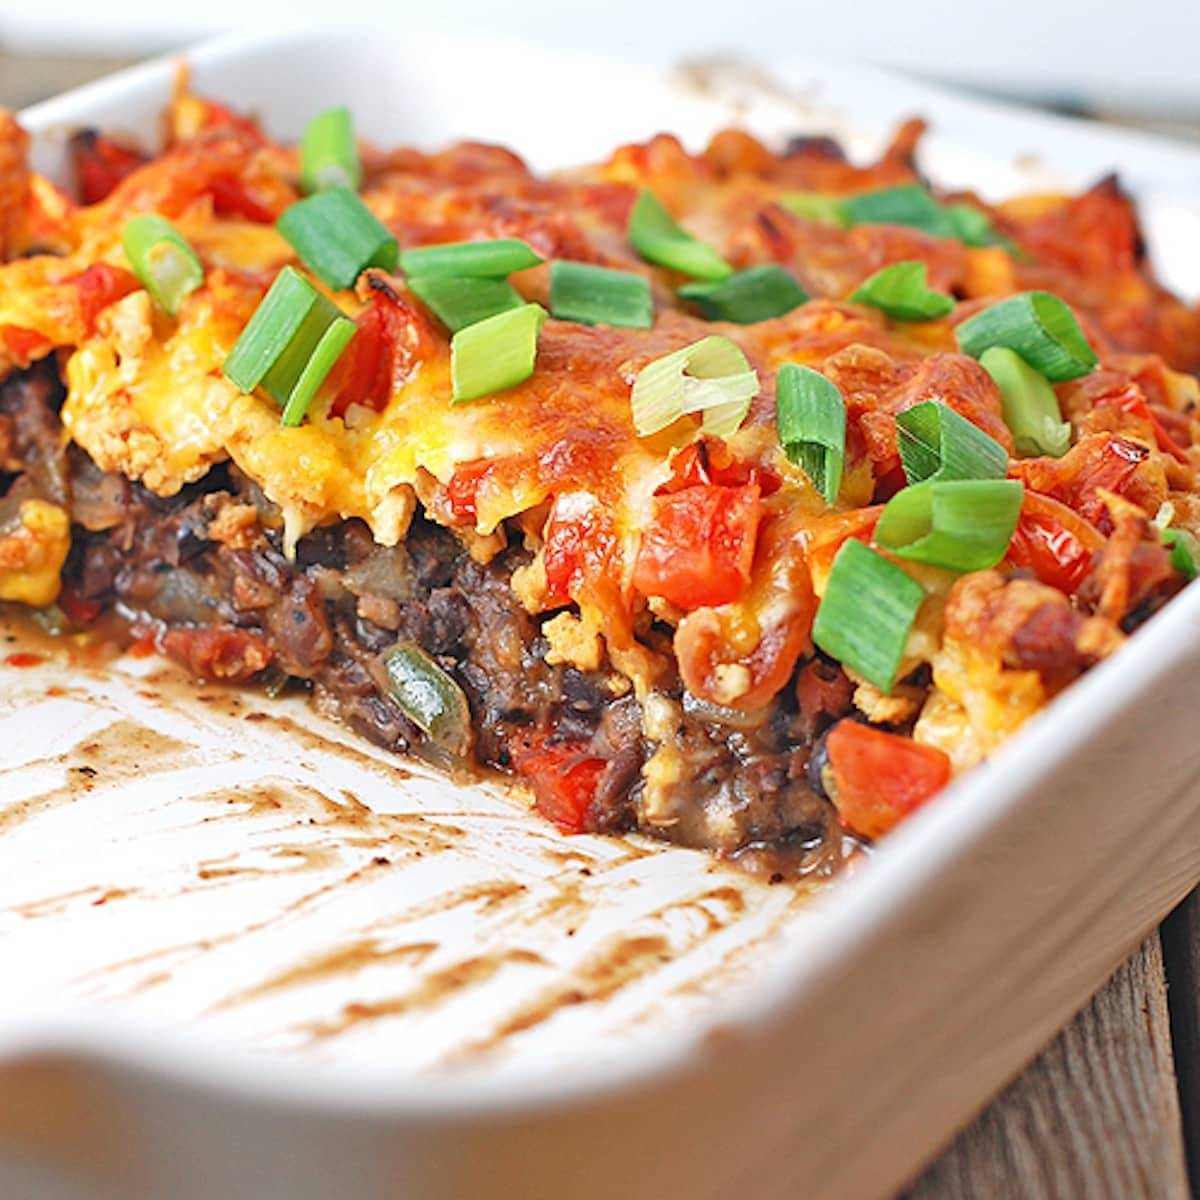 Black bean casserole is made with ground turkey, black beans, peppers, and cheese.